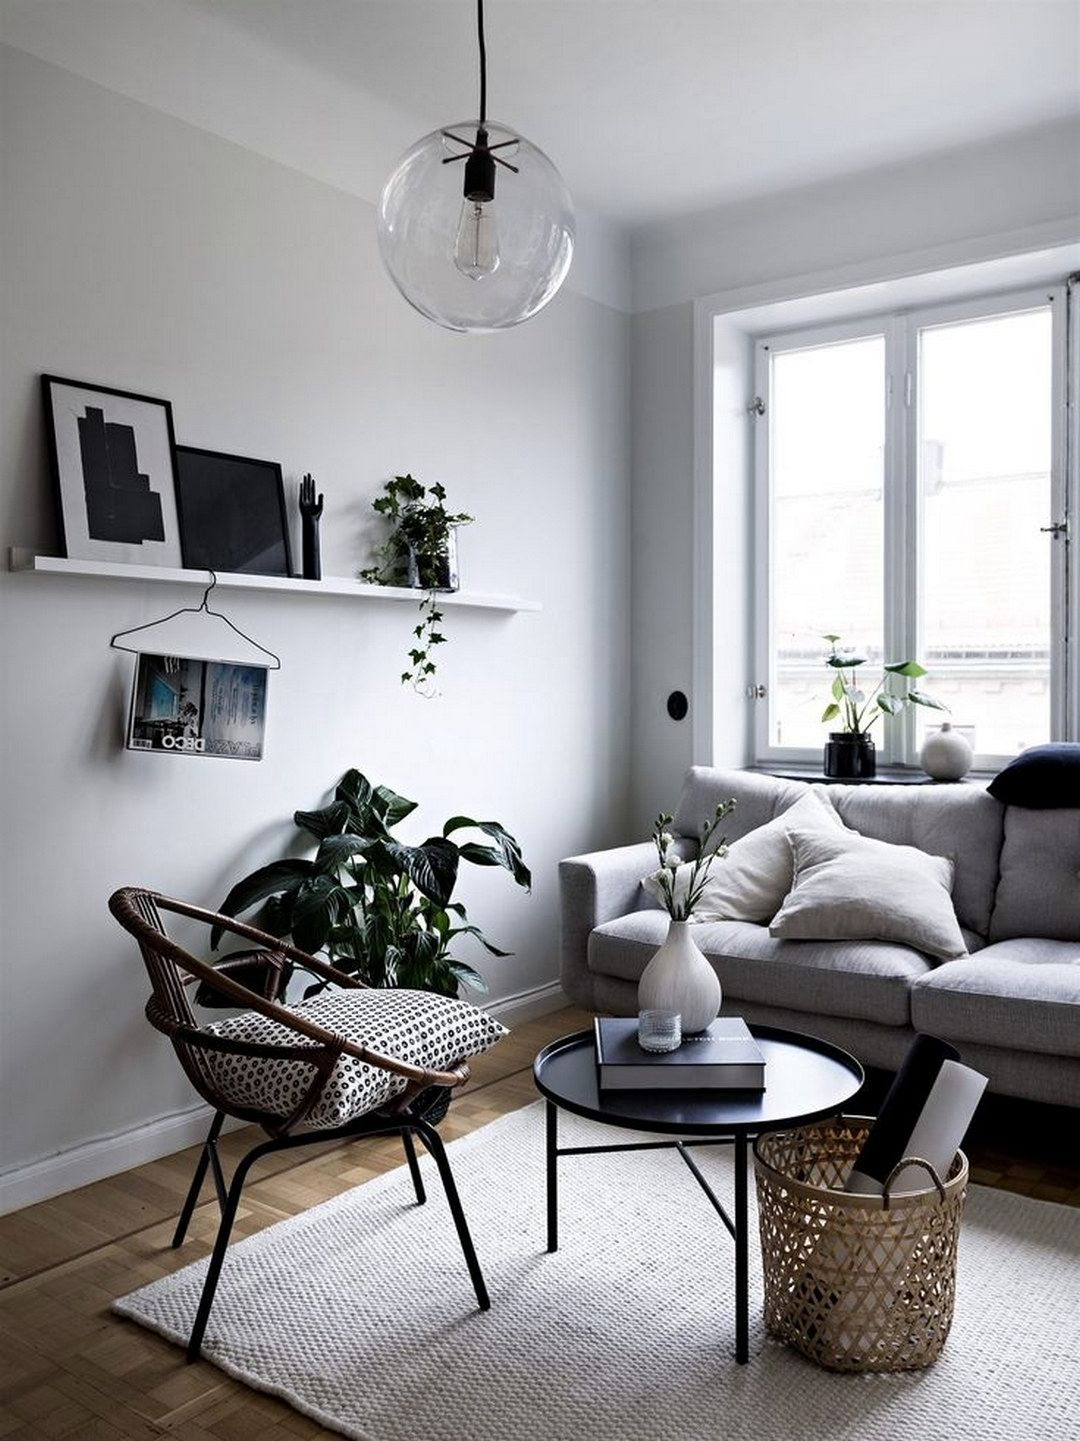 9 Minimalist Living Room Decoration Tips | Small living ...